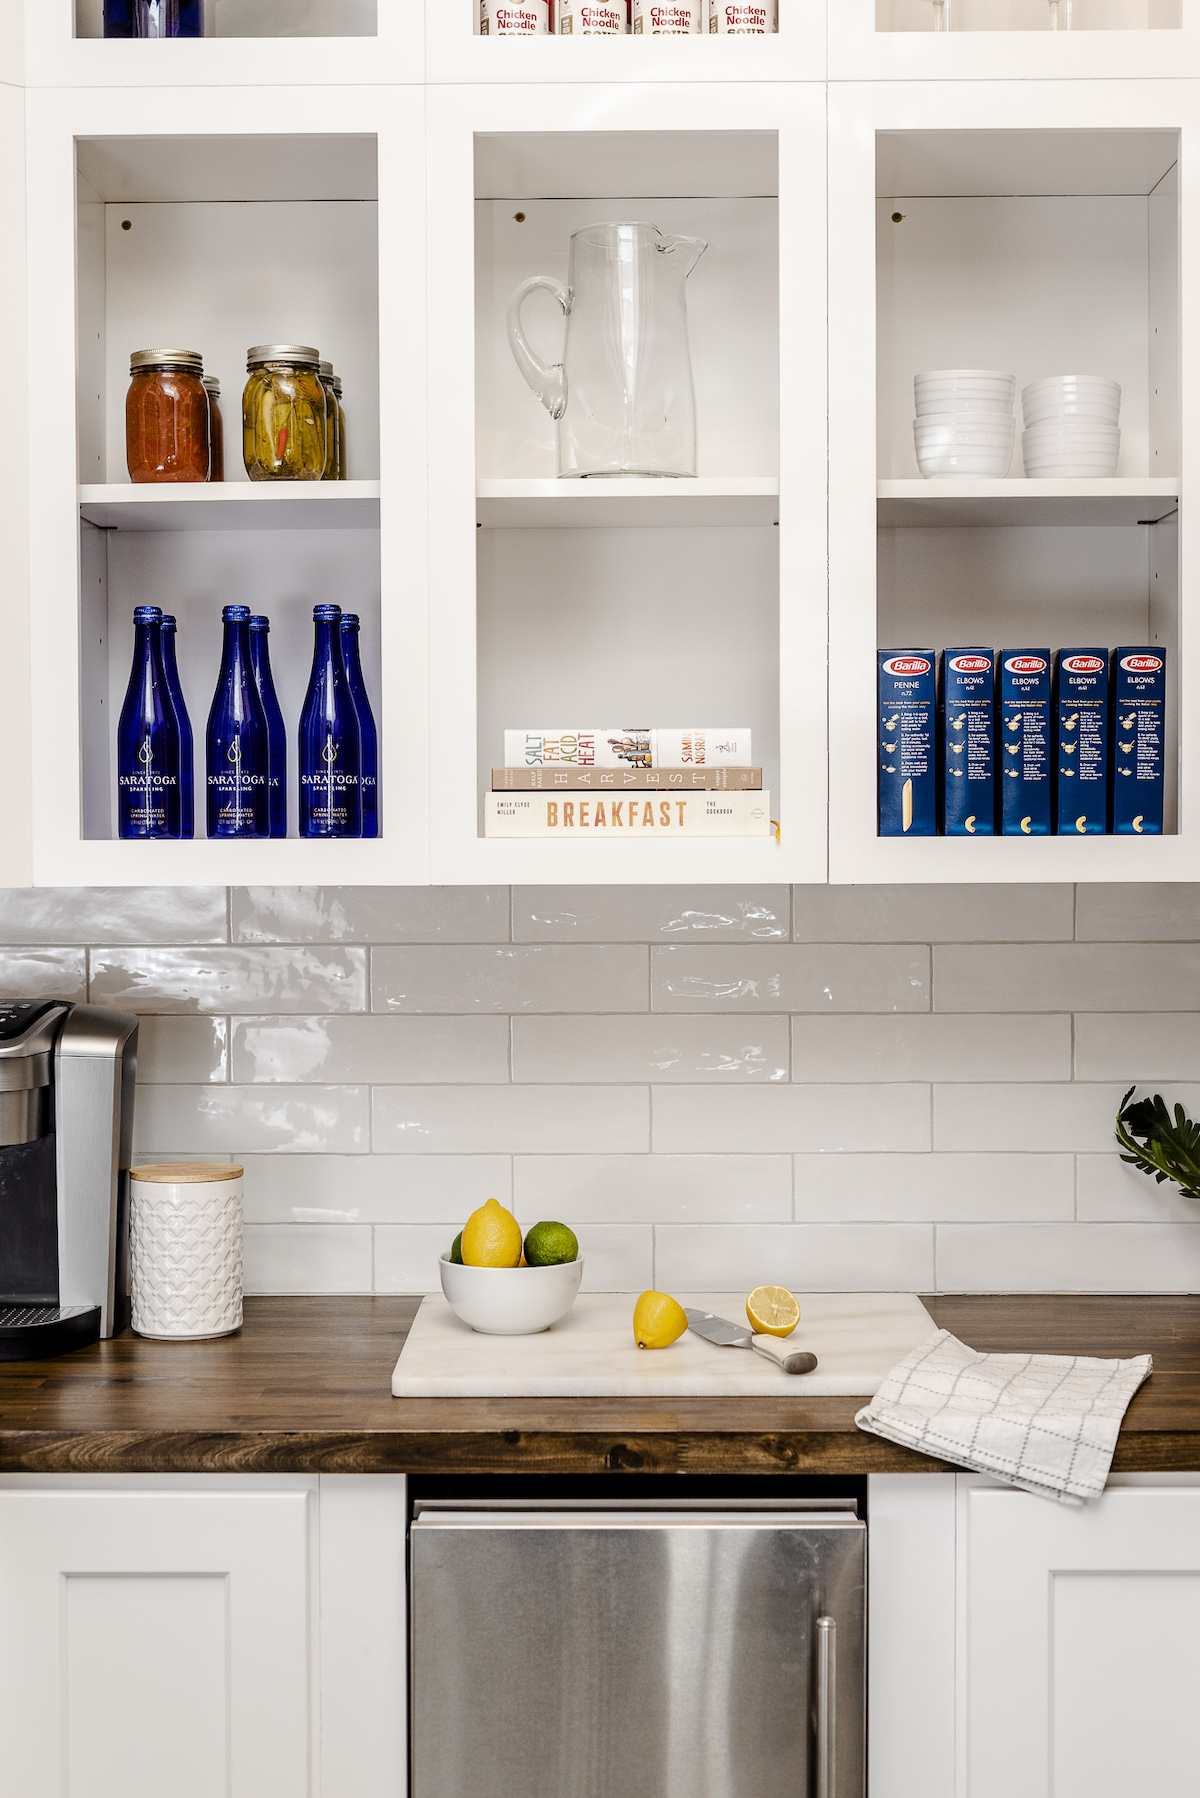 Vevano Pantry Project Cabinets